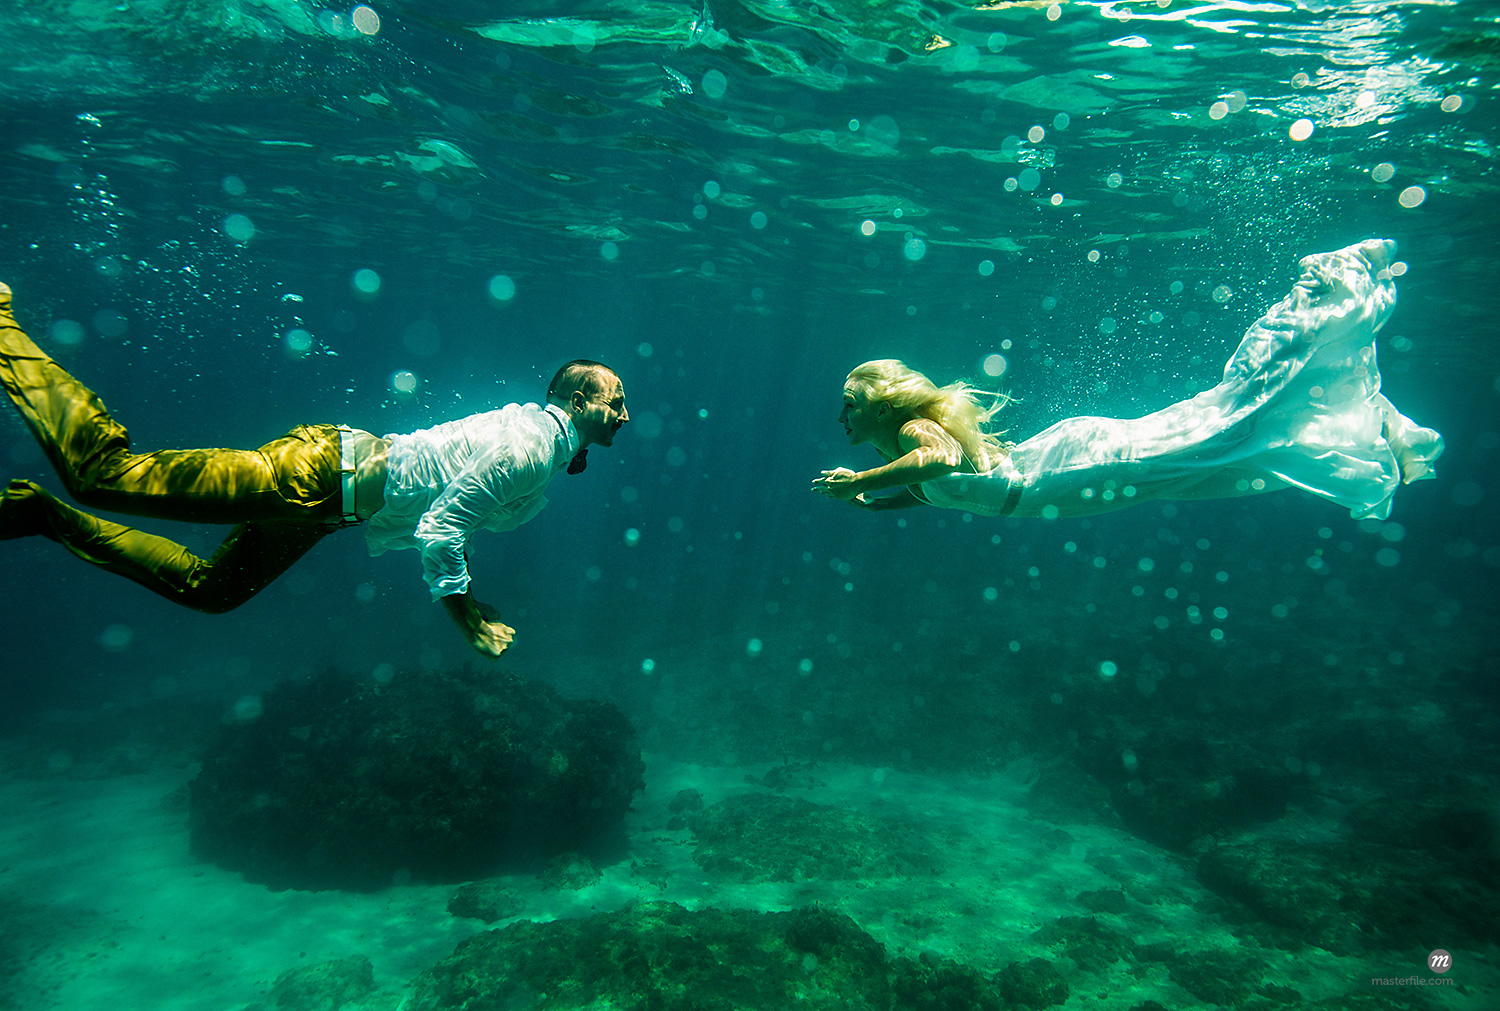 Couple in wedding attire, underwater, swimming towards each other  © Masterfile